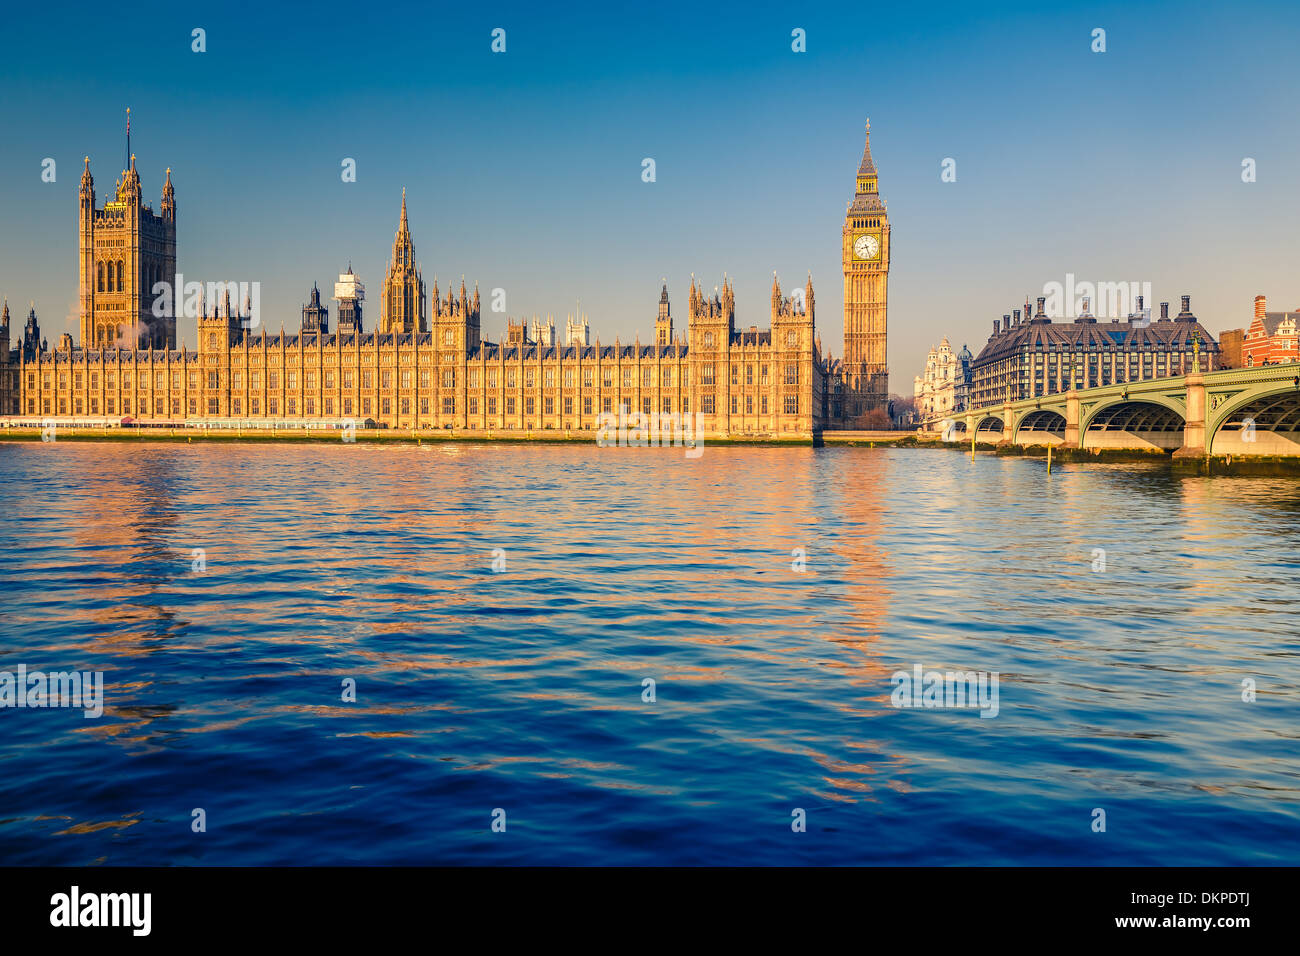 Big Ben in London - Stock Image